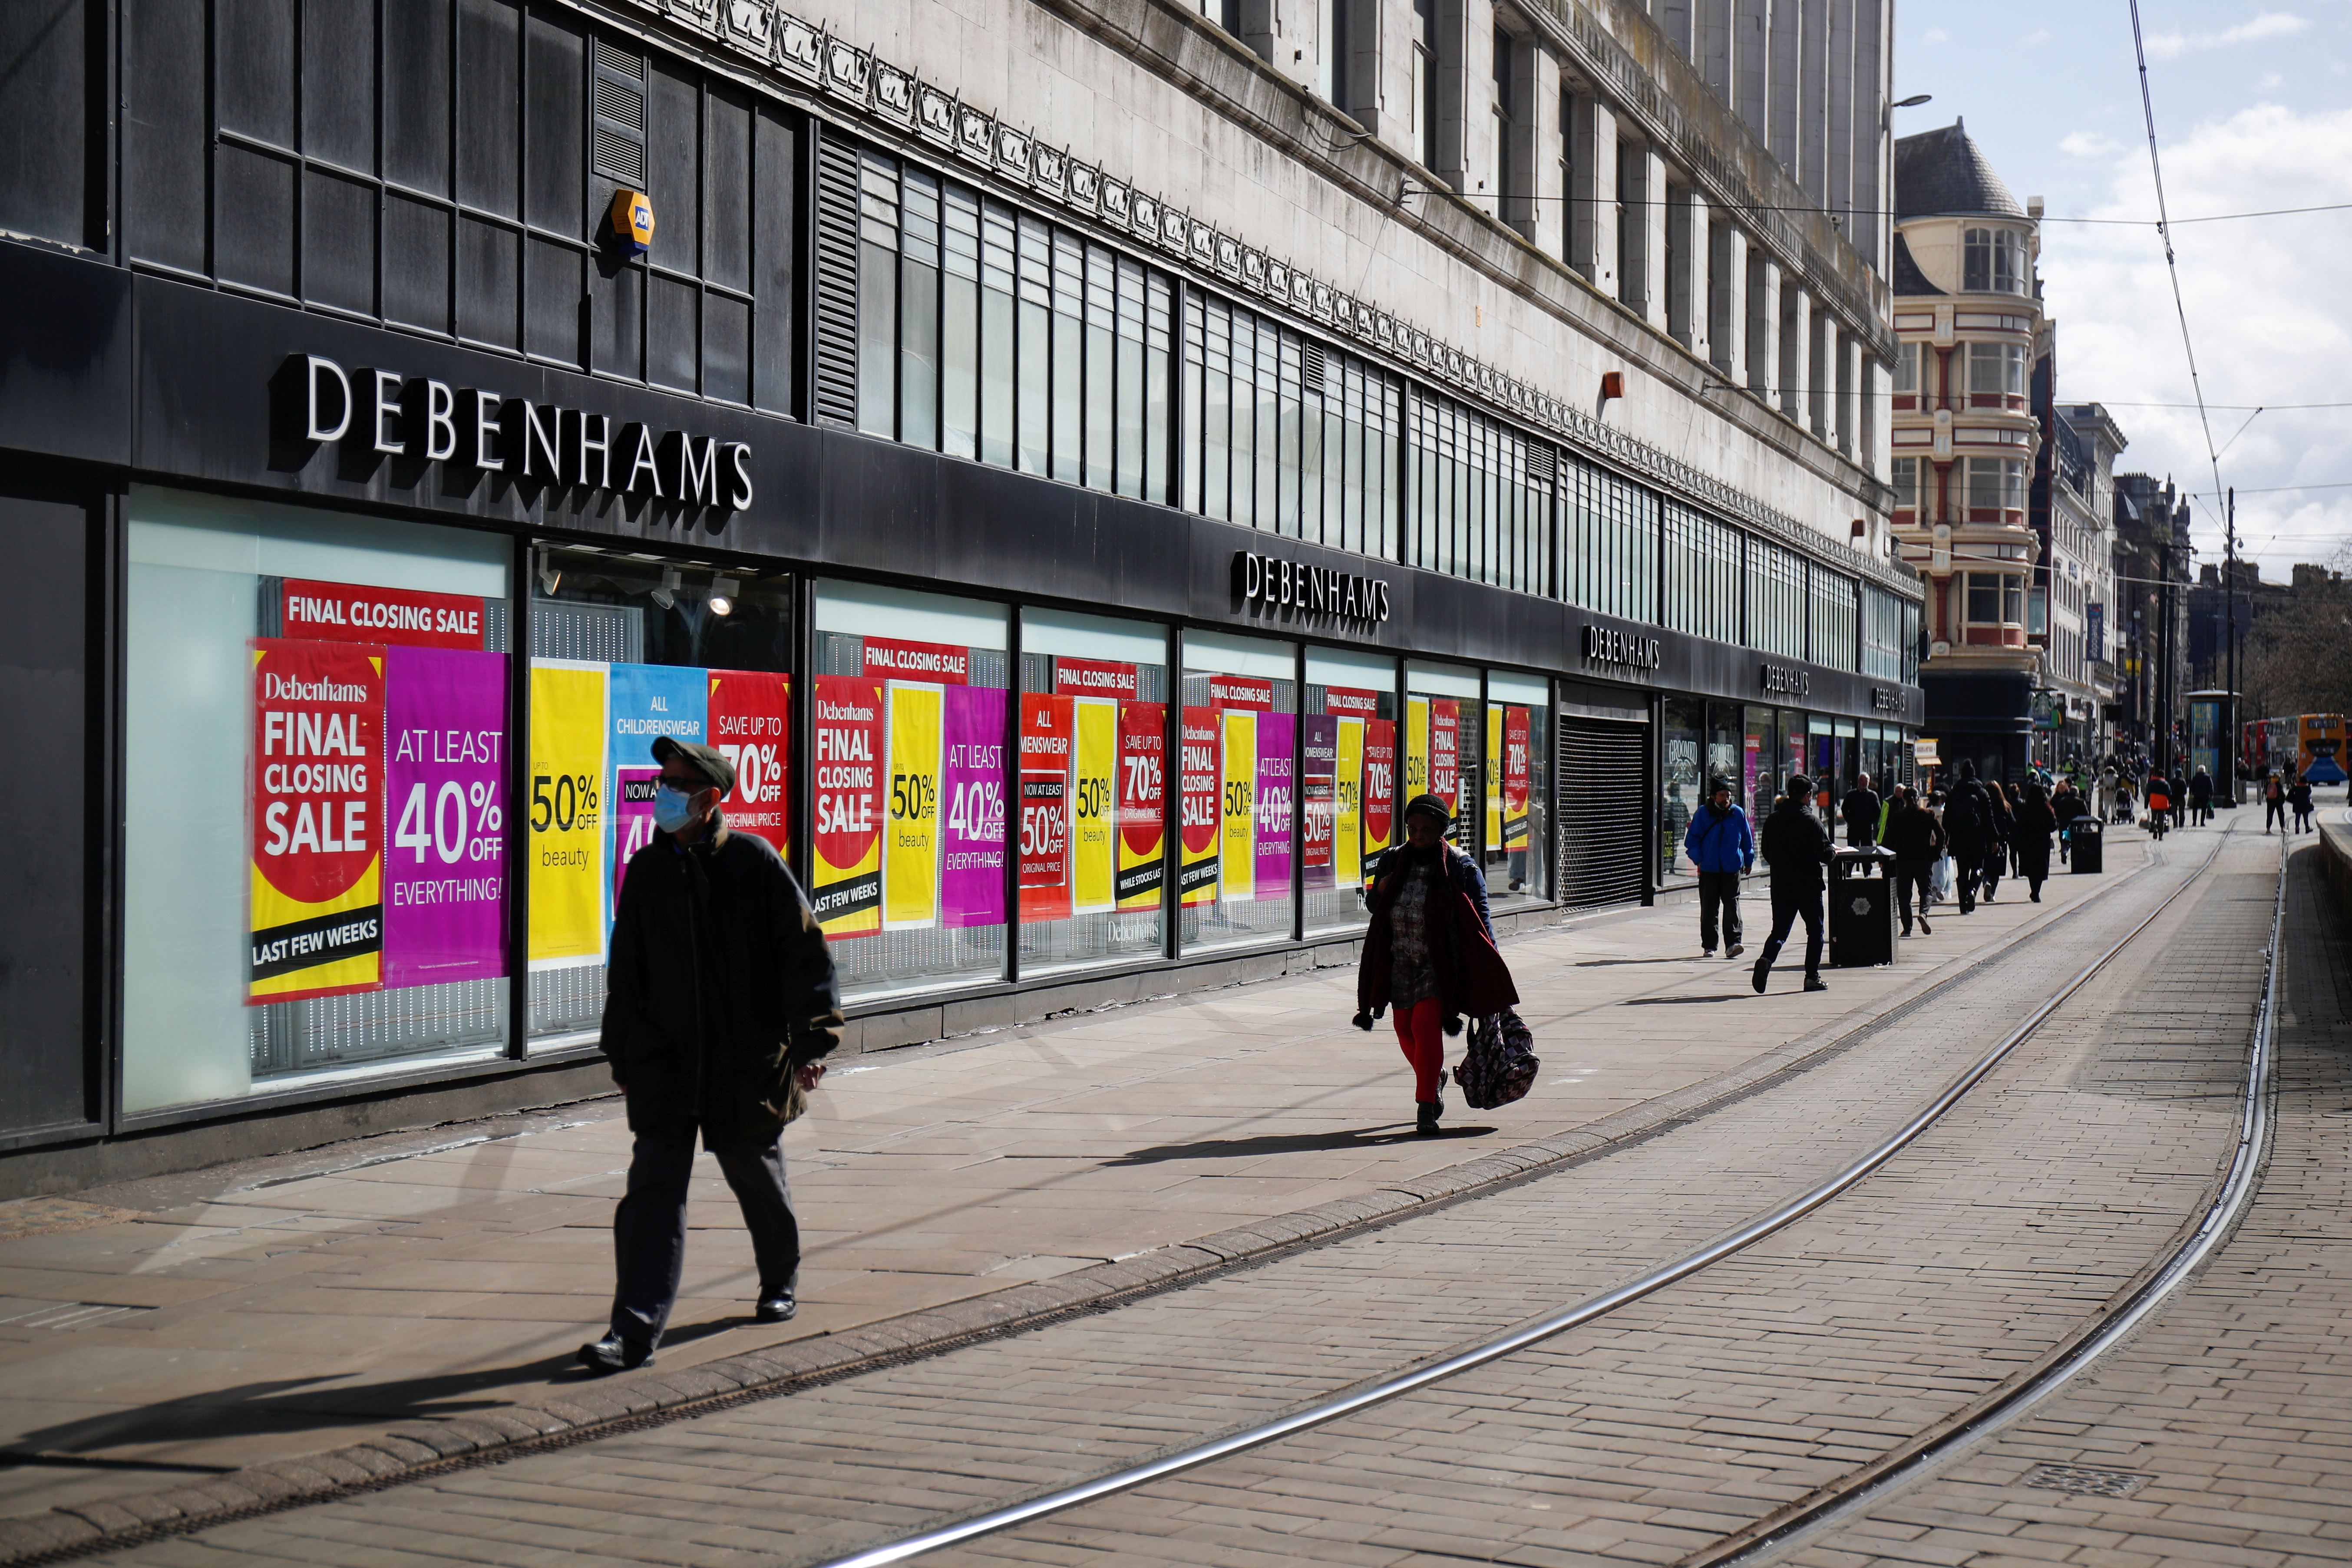 People walk past shops, as the coronavirus disease (COVID-19) restrictions begin to ease, in Manchester, Britain, April 9, 2021. REUTERS/Molly Darlington